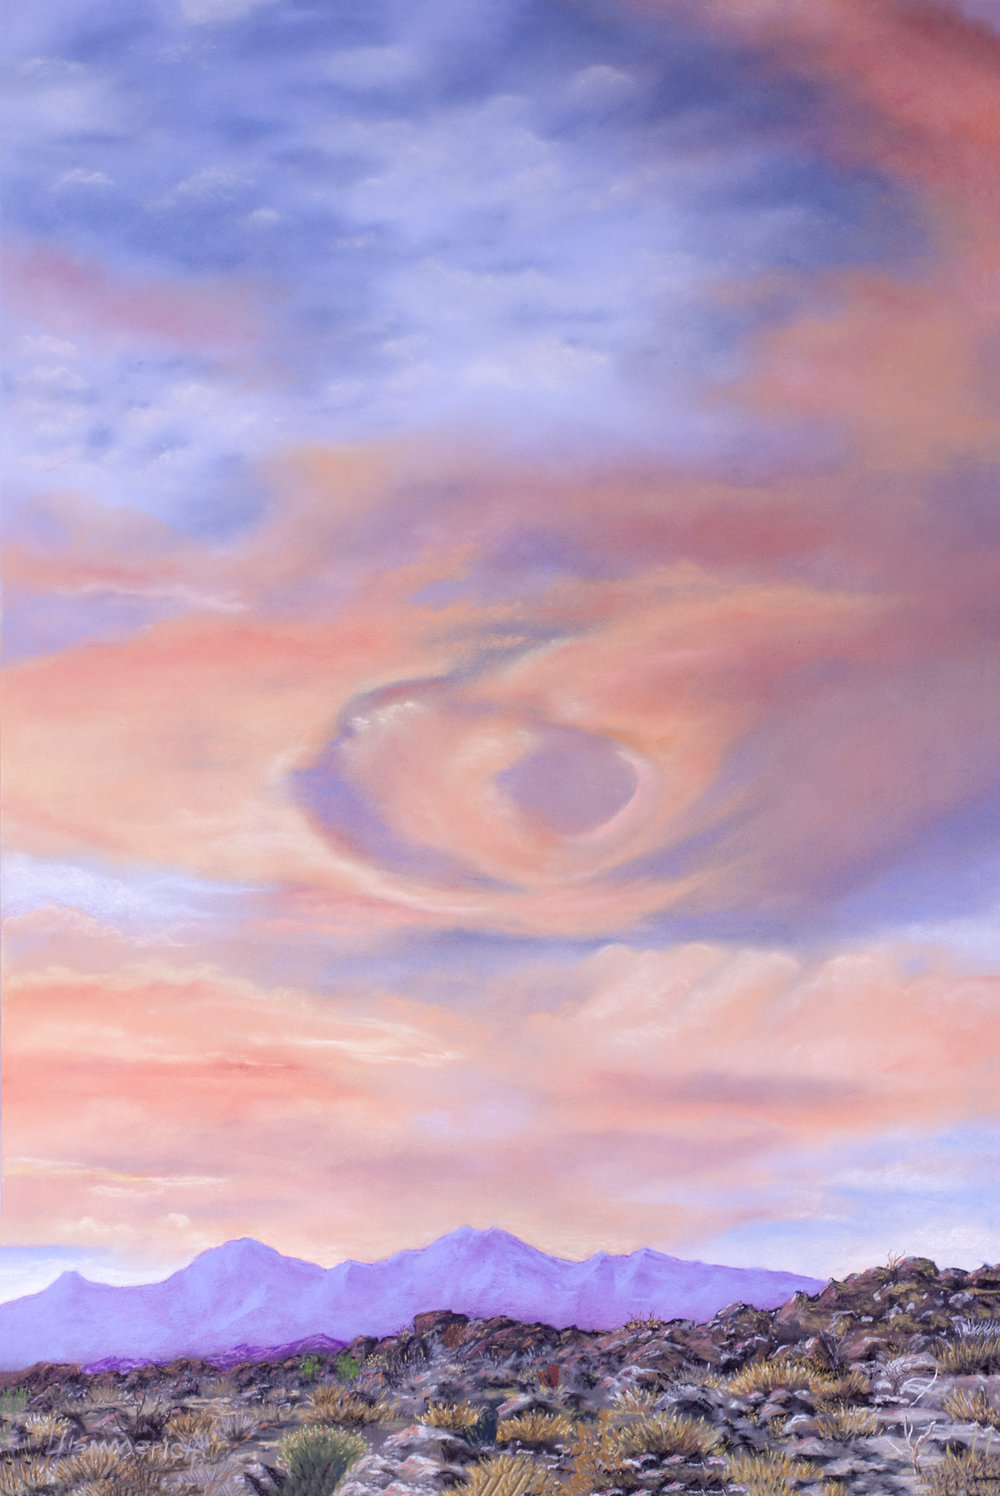 Vortex Cloud Sunset